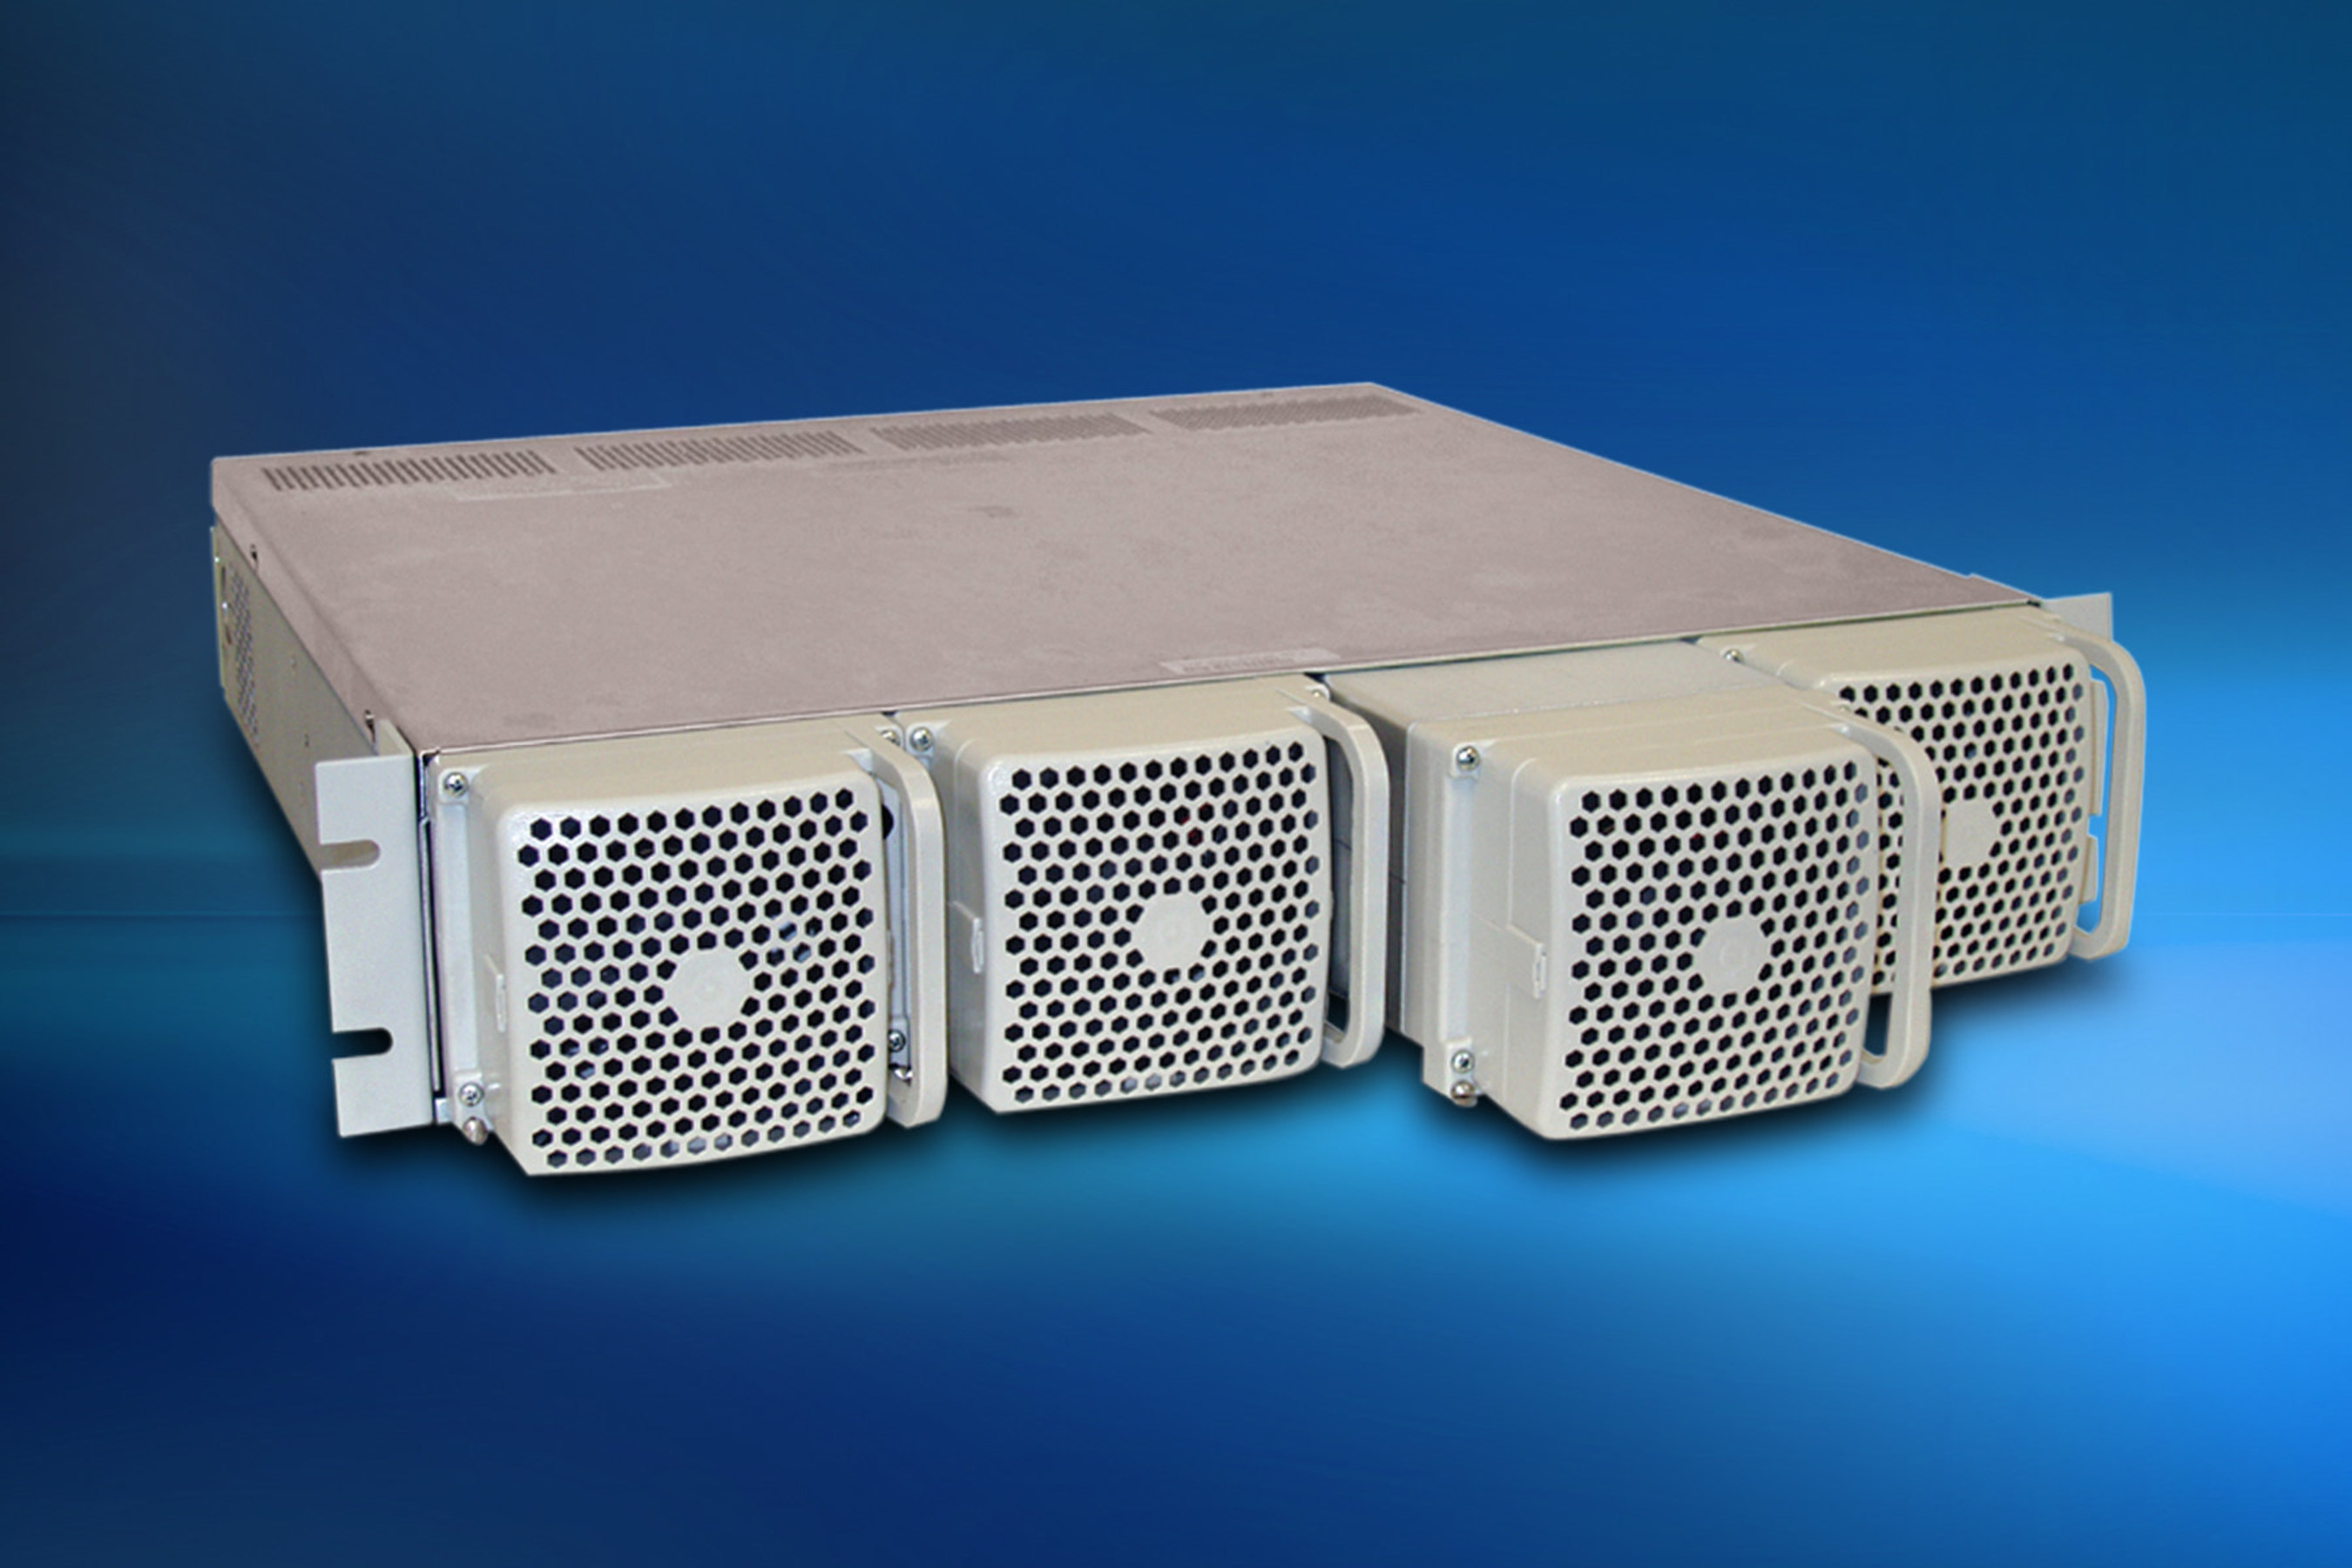 Digitally Programmable DC Source from Astrodyne TDI Provides 3.8kW of Regulated Power